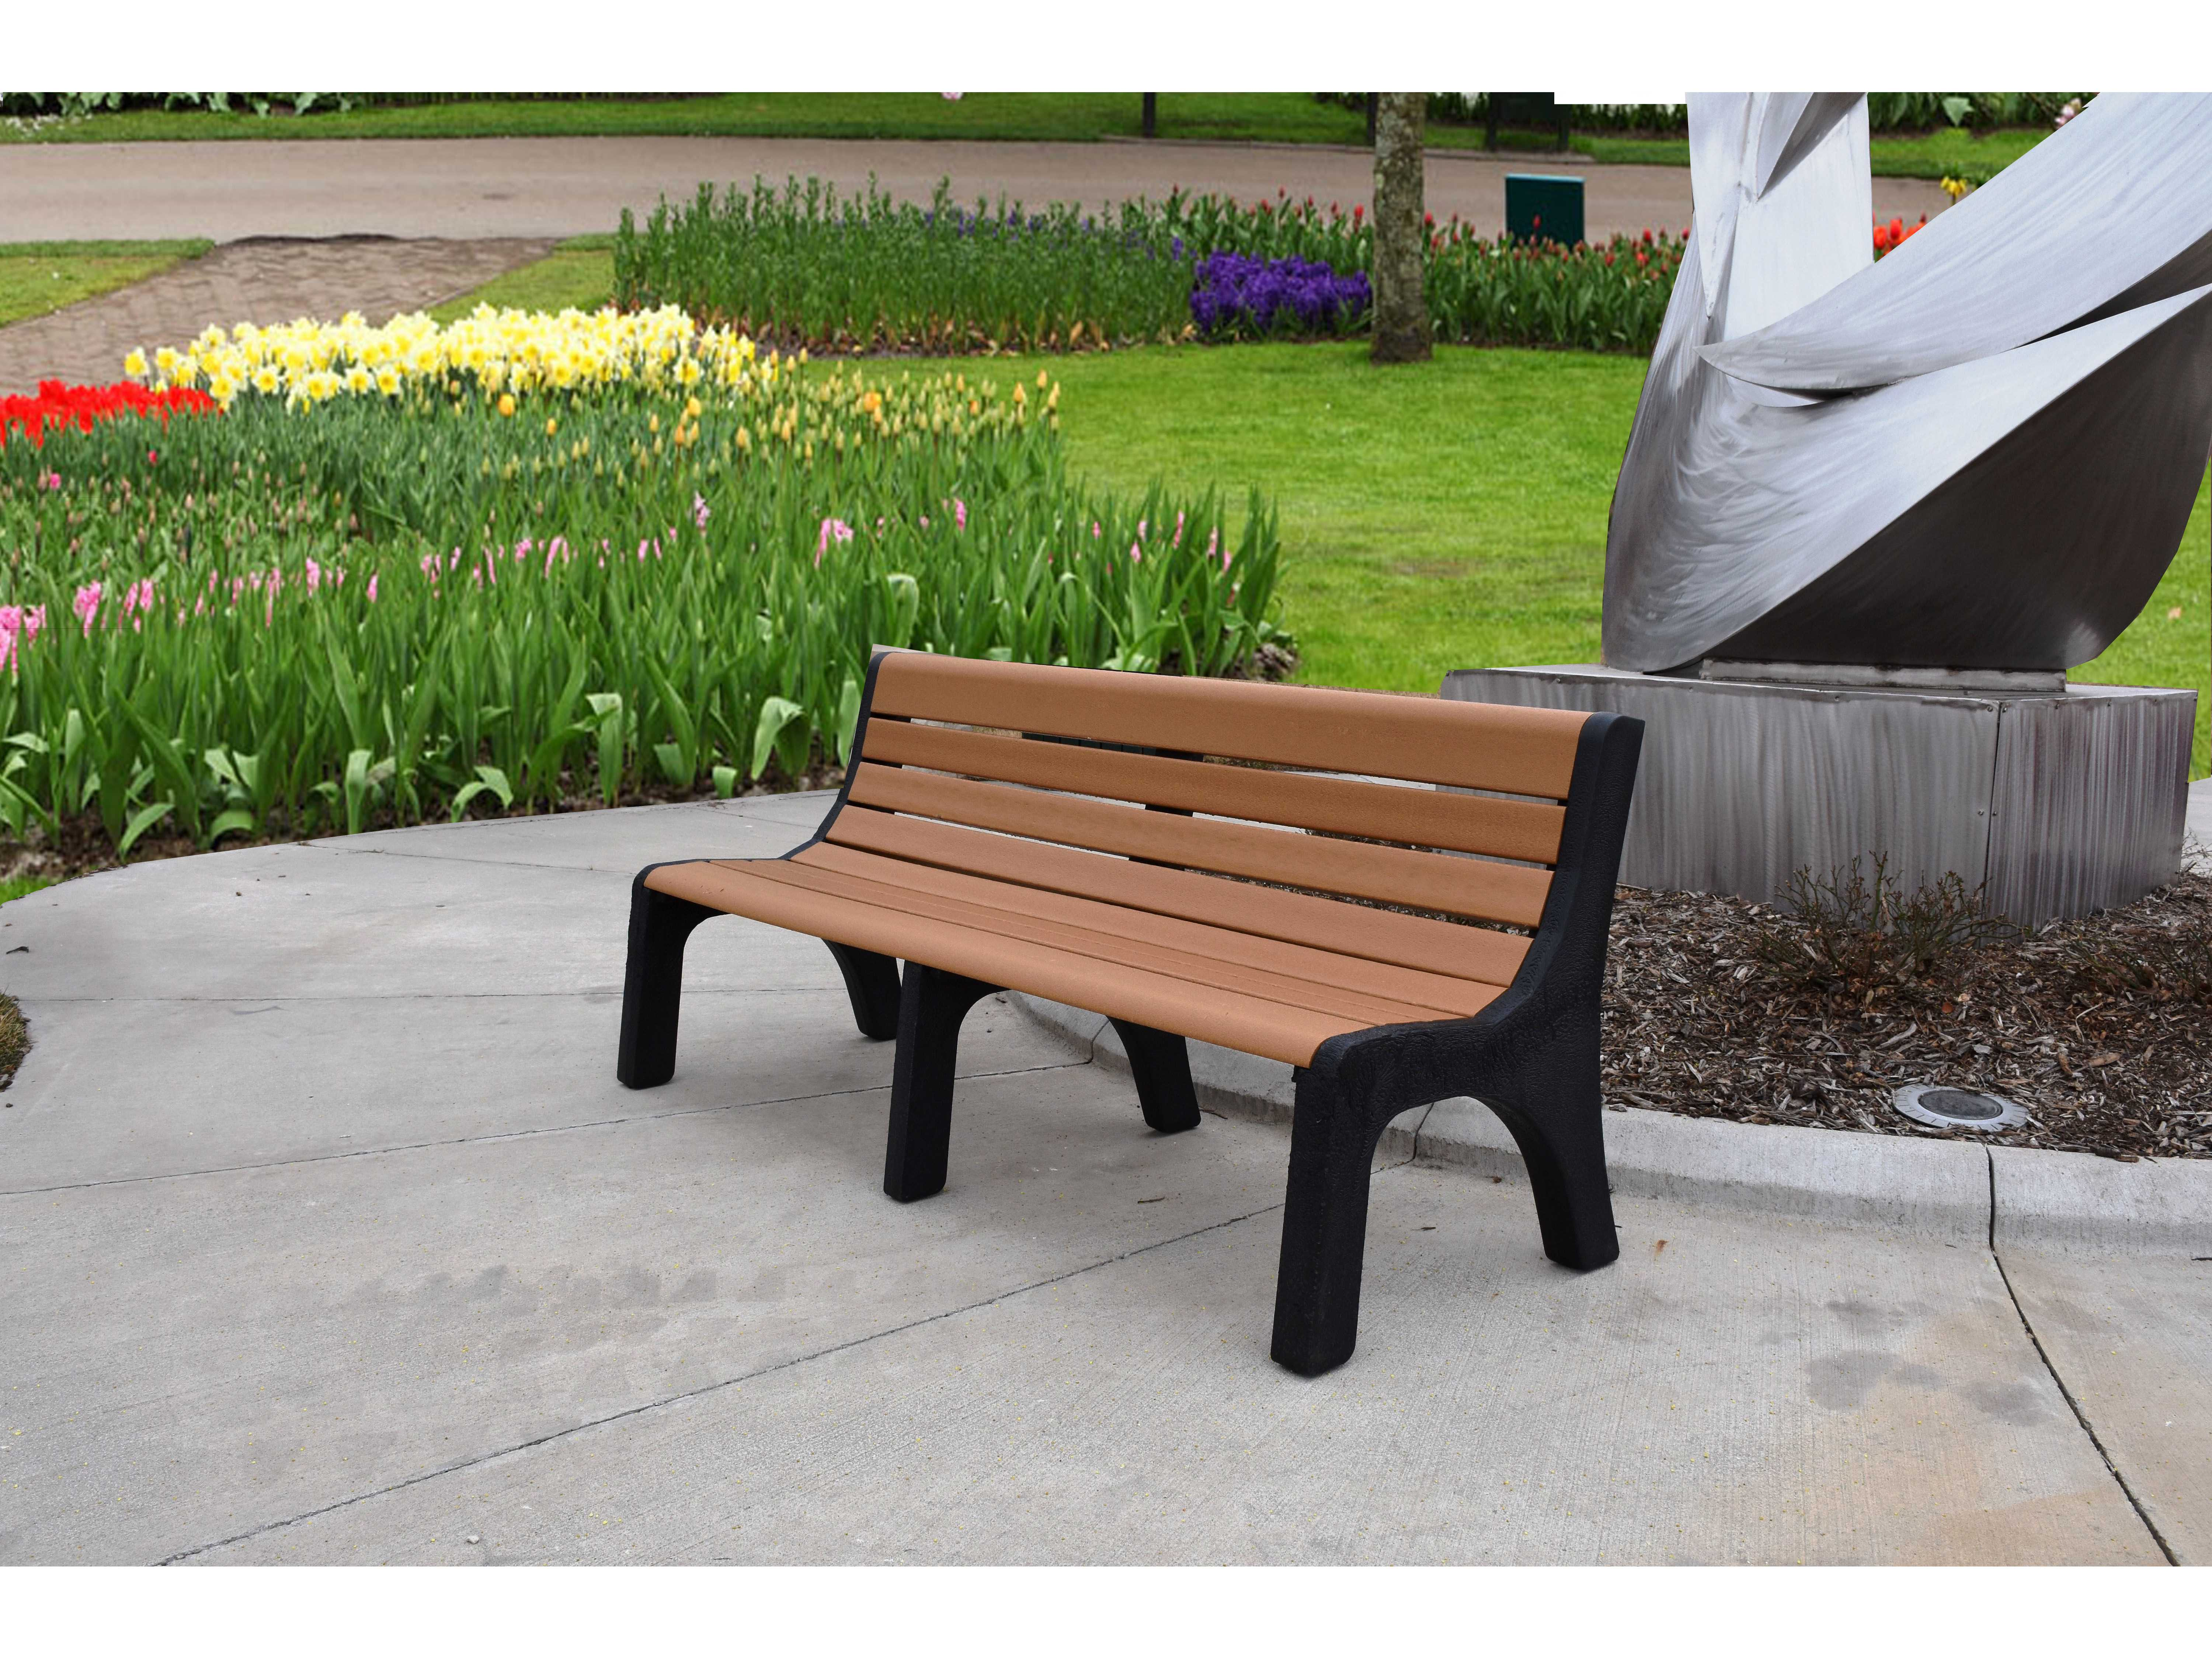 Frog Furnishings Newport Recycled Plastic Bench Jhpbnew